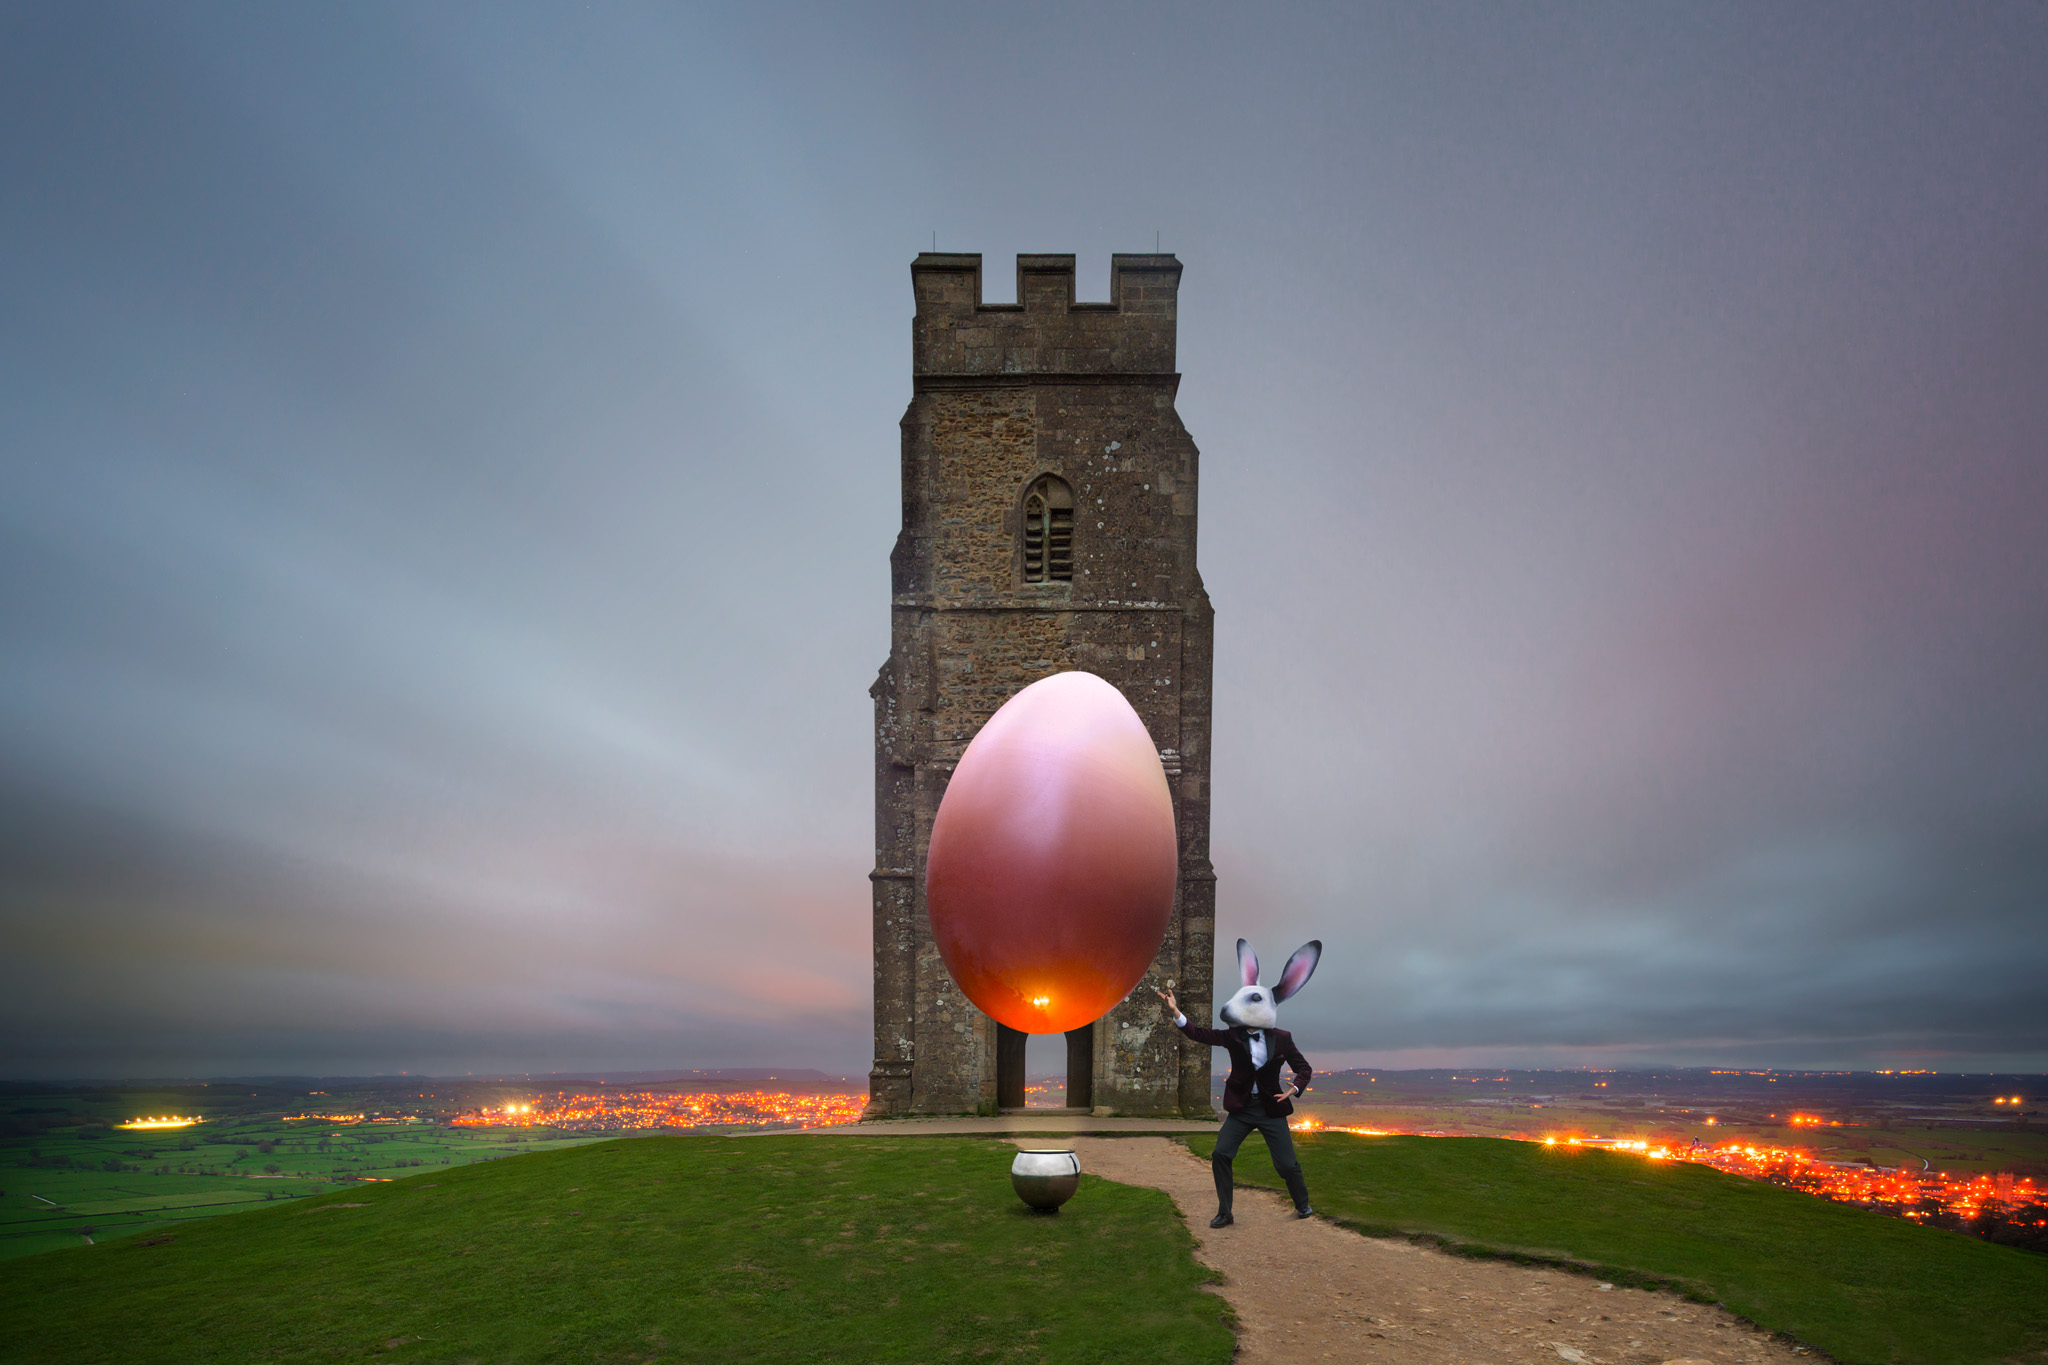 Over three days we did our own Easter egg hunt to various mystical sites in the West of England and Wales including Glastonbury Tor.